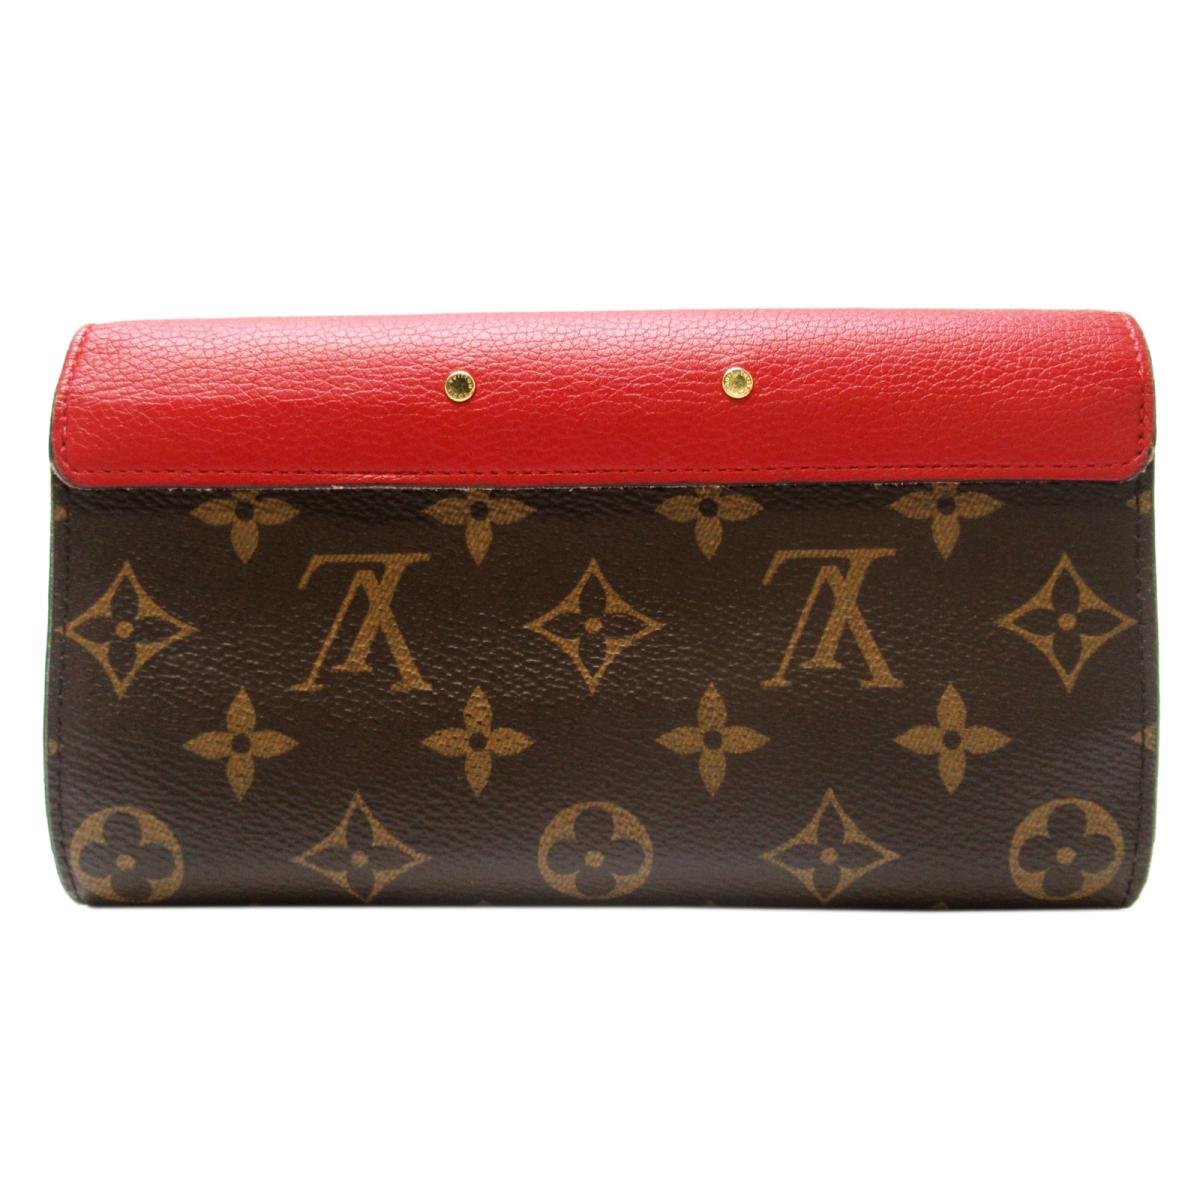 LOUIS VUITTON LV 路易威登 LOUIS VUITTON LV 路易威登 サイフ・小物 M58414 原花紅色牛皮二折長夾 Pallas Wallet M58414